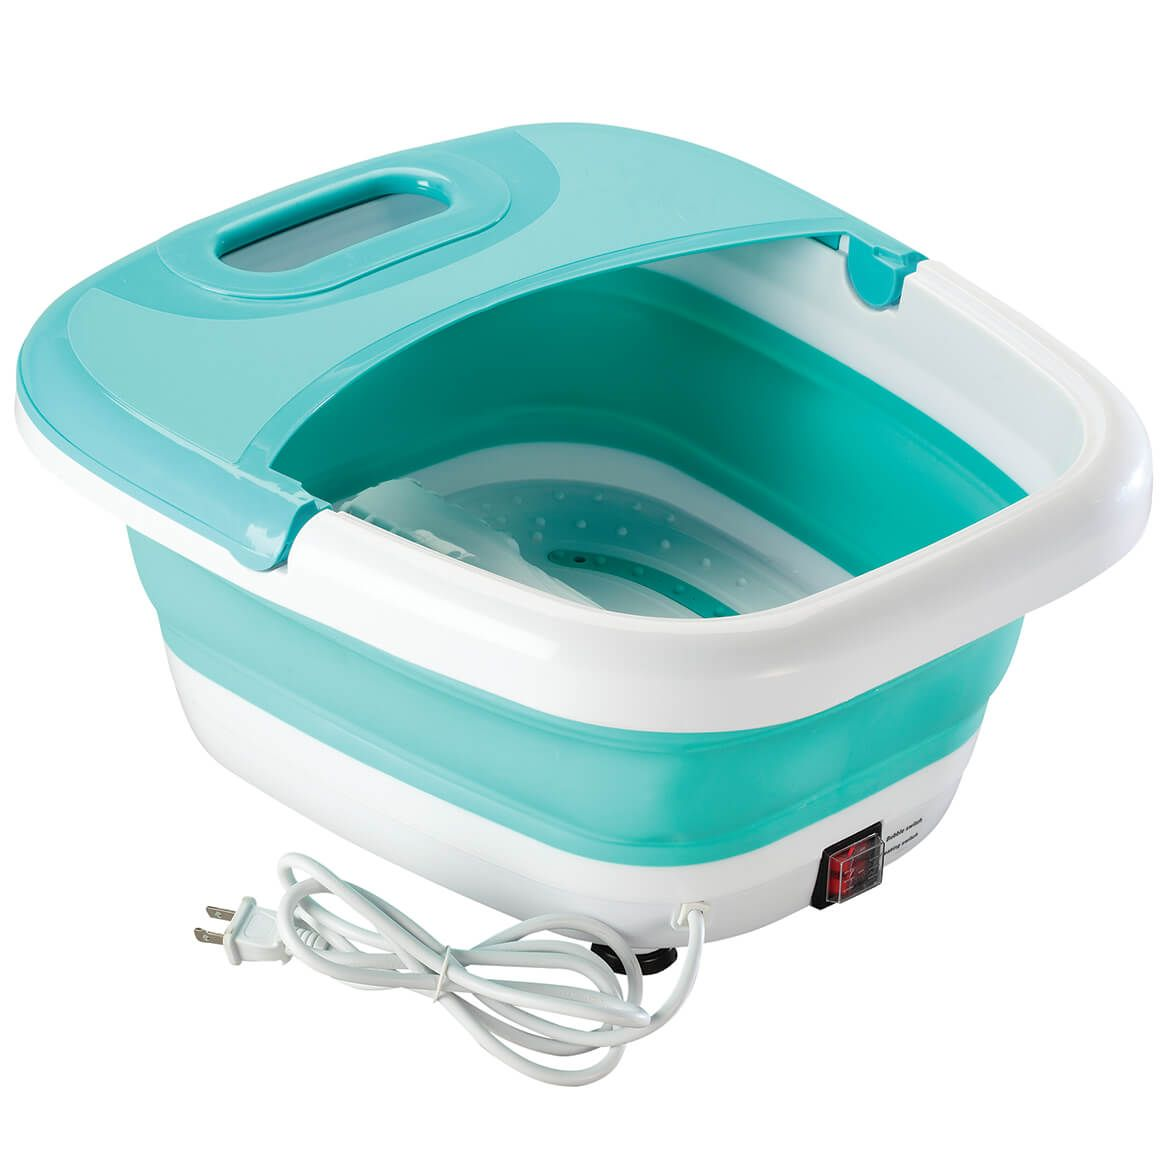 Collapsible Massaging Heated Foot Spa-369186